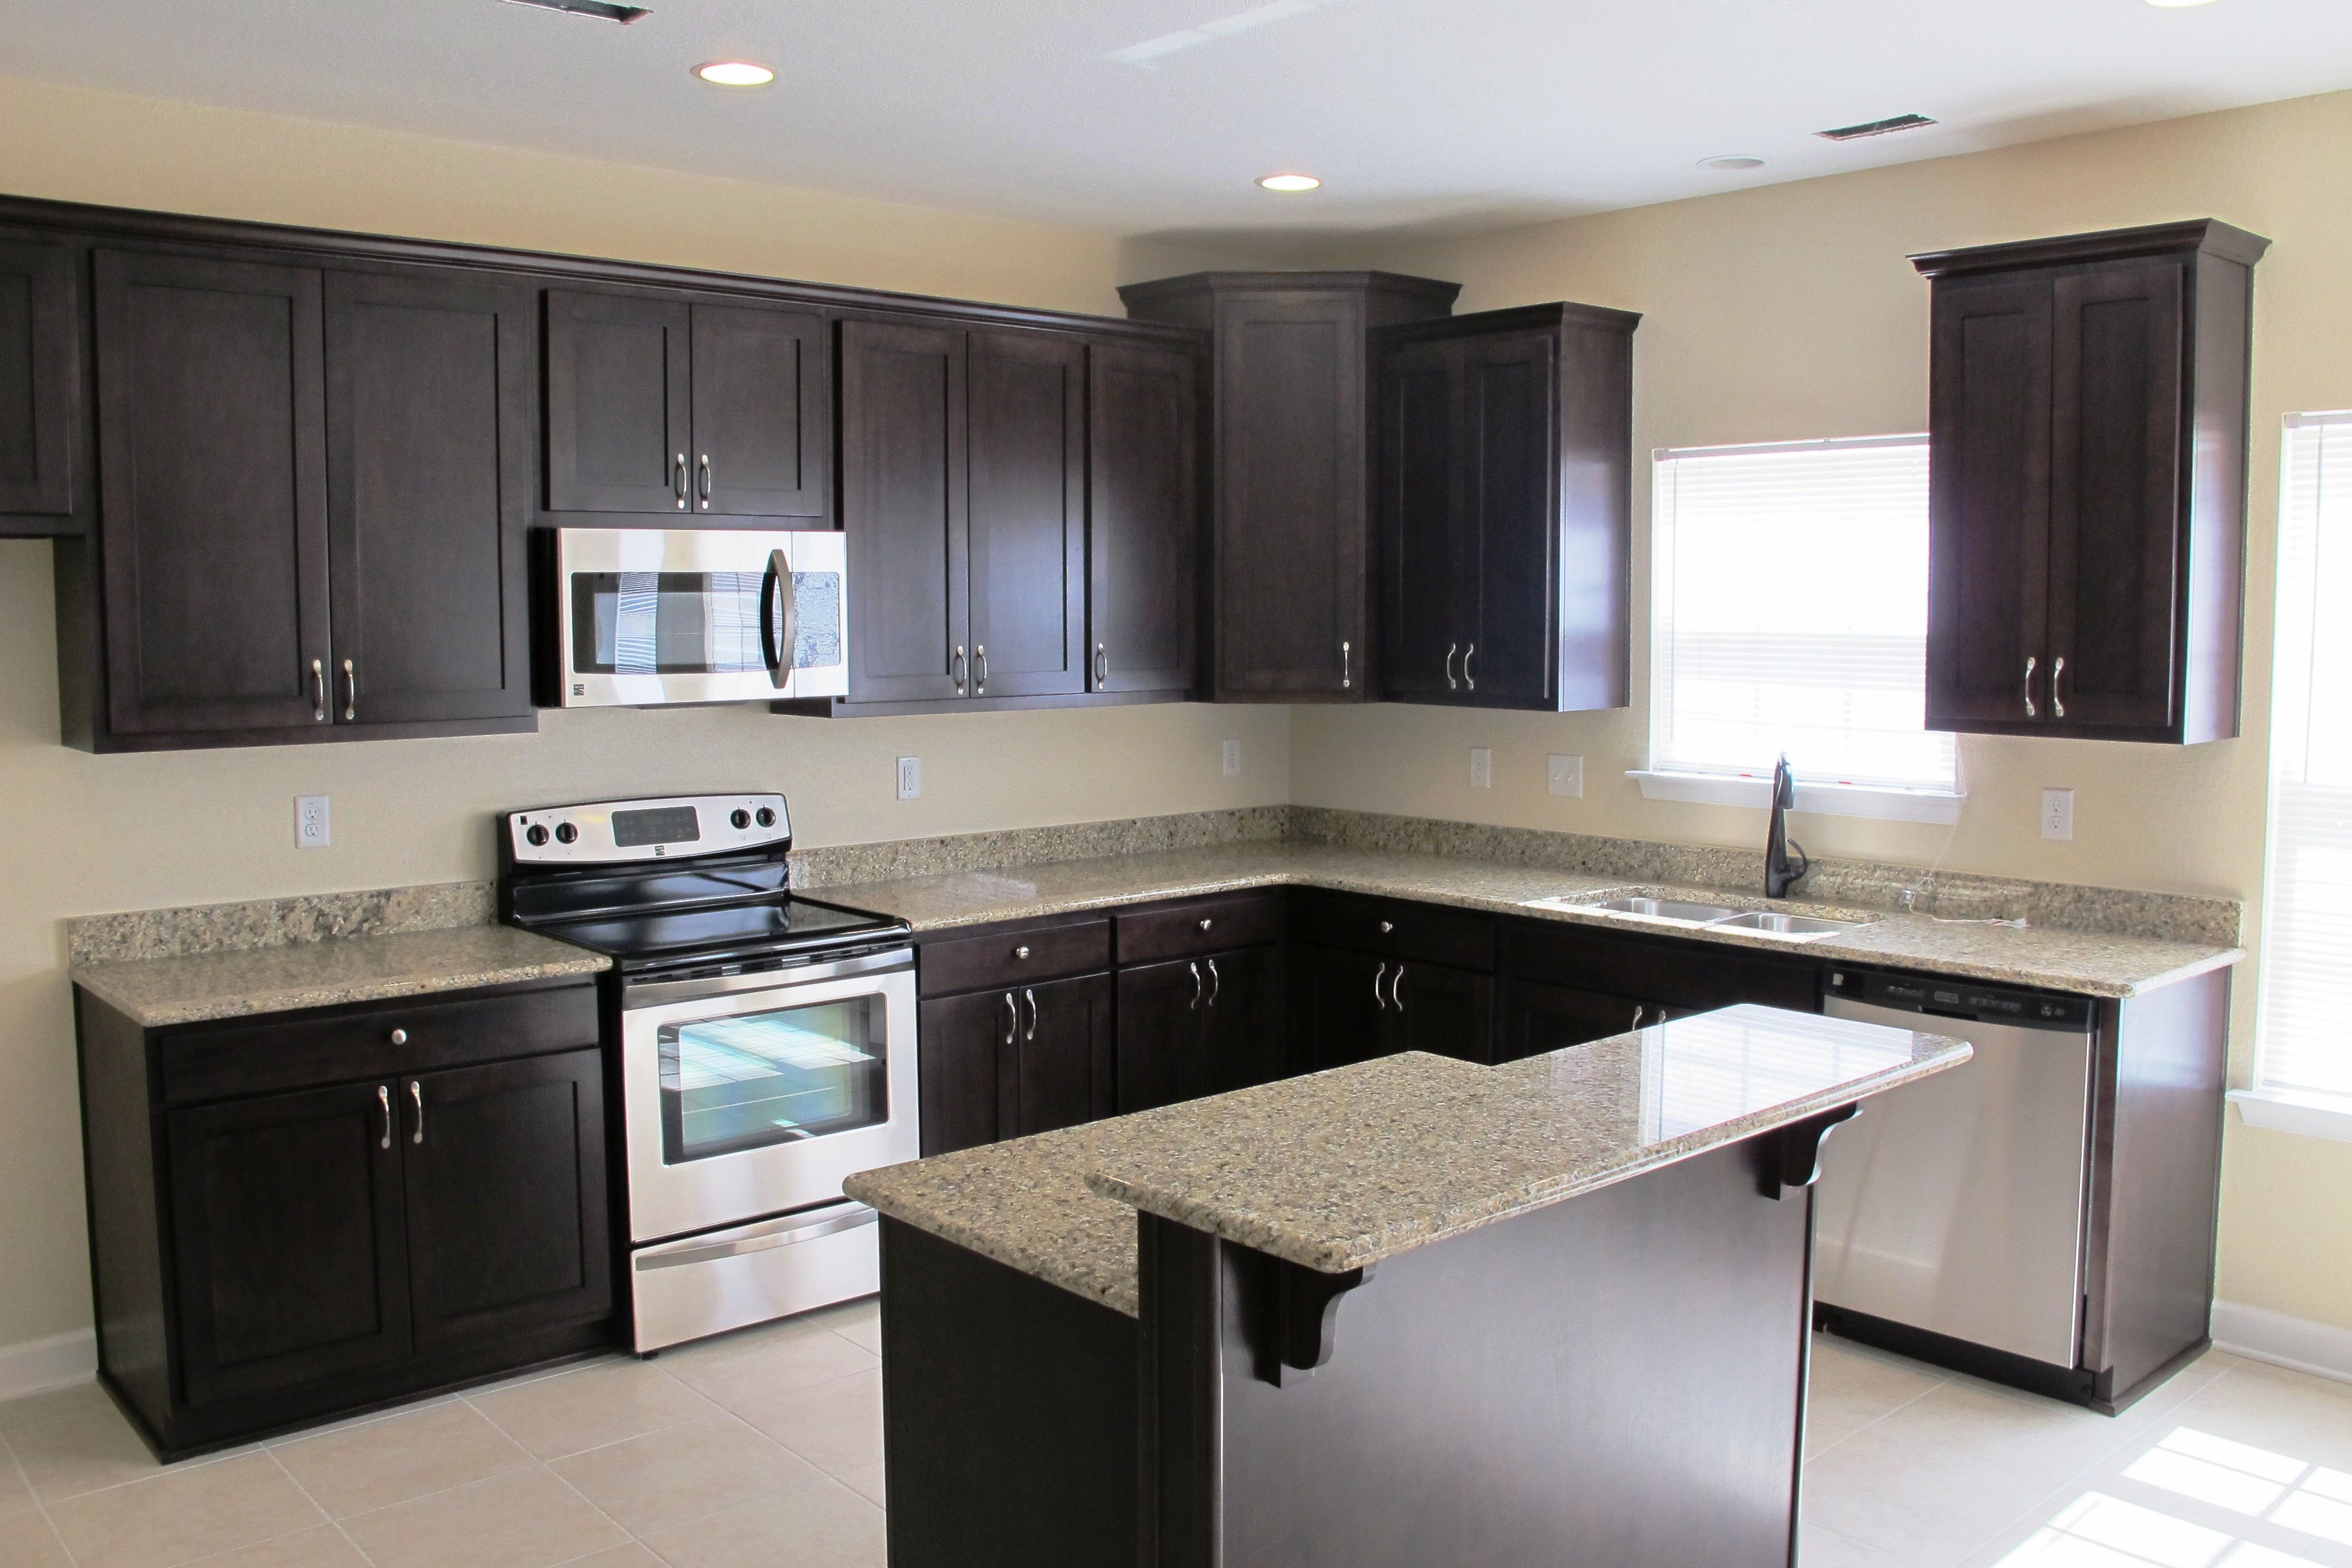 Incredible Hardwood Espresso Kitchen Cabinets With Small Bar Island     Incredible Hardwood Espresso Kitchen Cabinets With Small Bar Island White  Granite Glossy Tops And Great L shaped Kitchen Cabinetry Set Style In  Modern